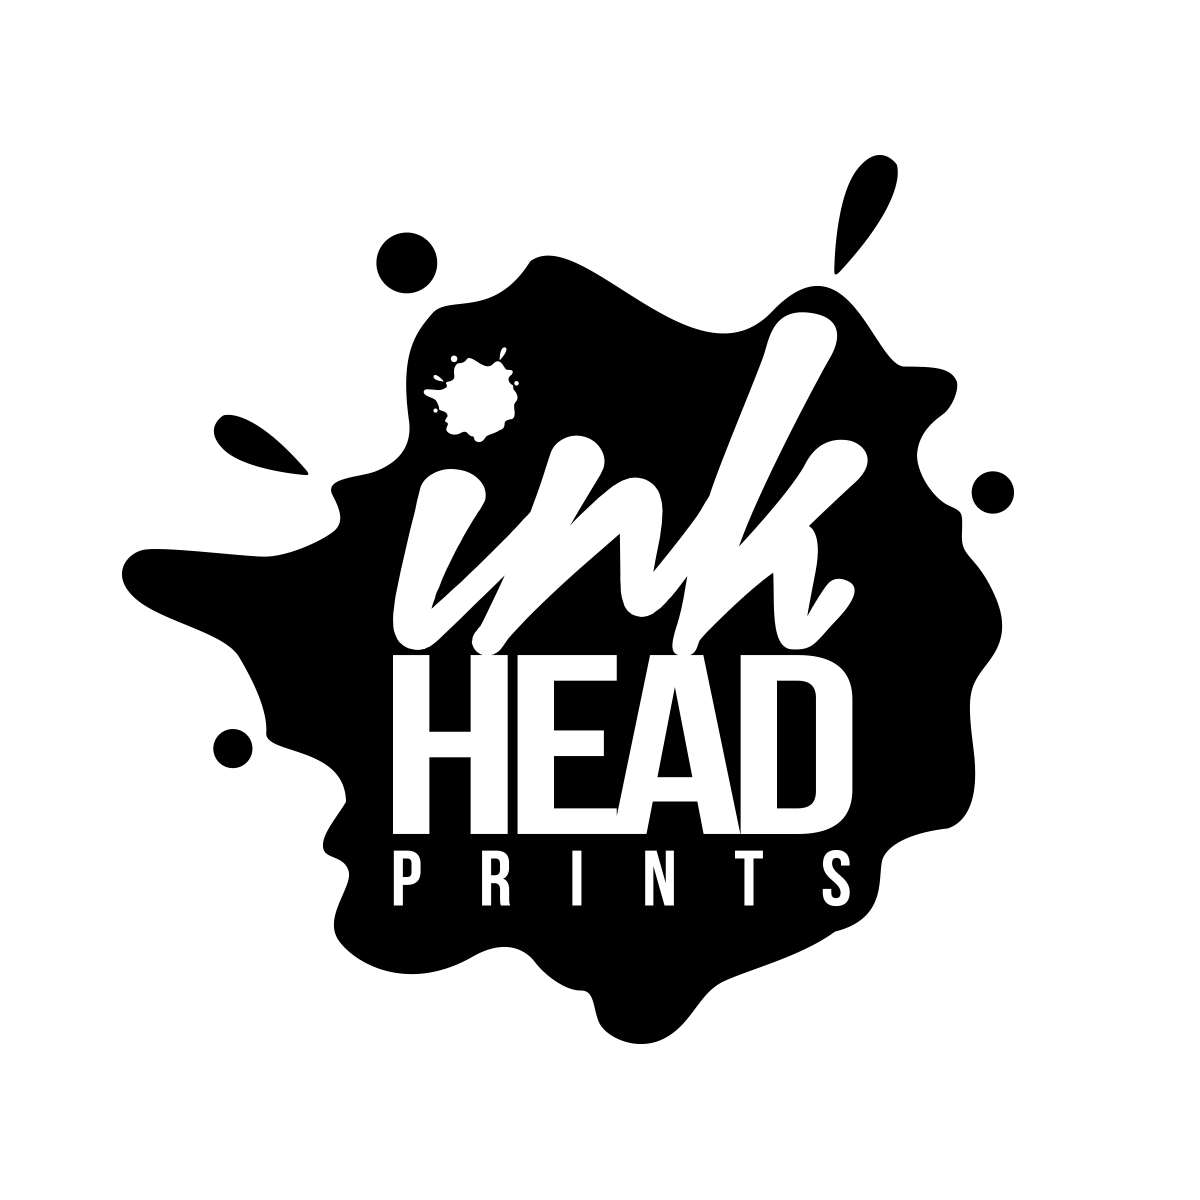 graphic transparent download Ink Head Prints Splatter LOGO We are here to create any logo or